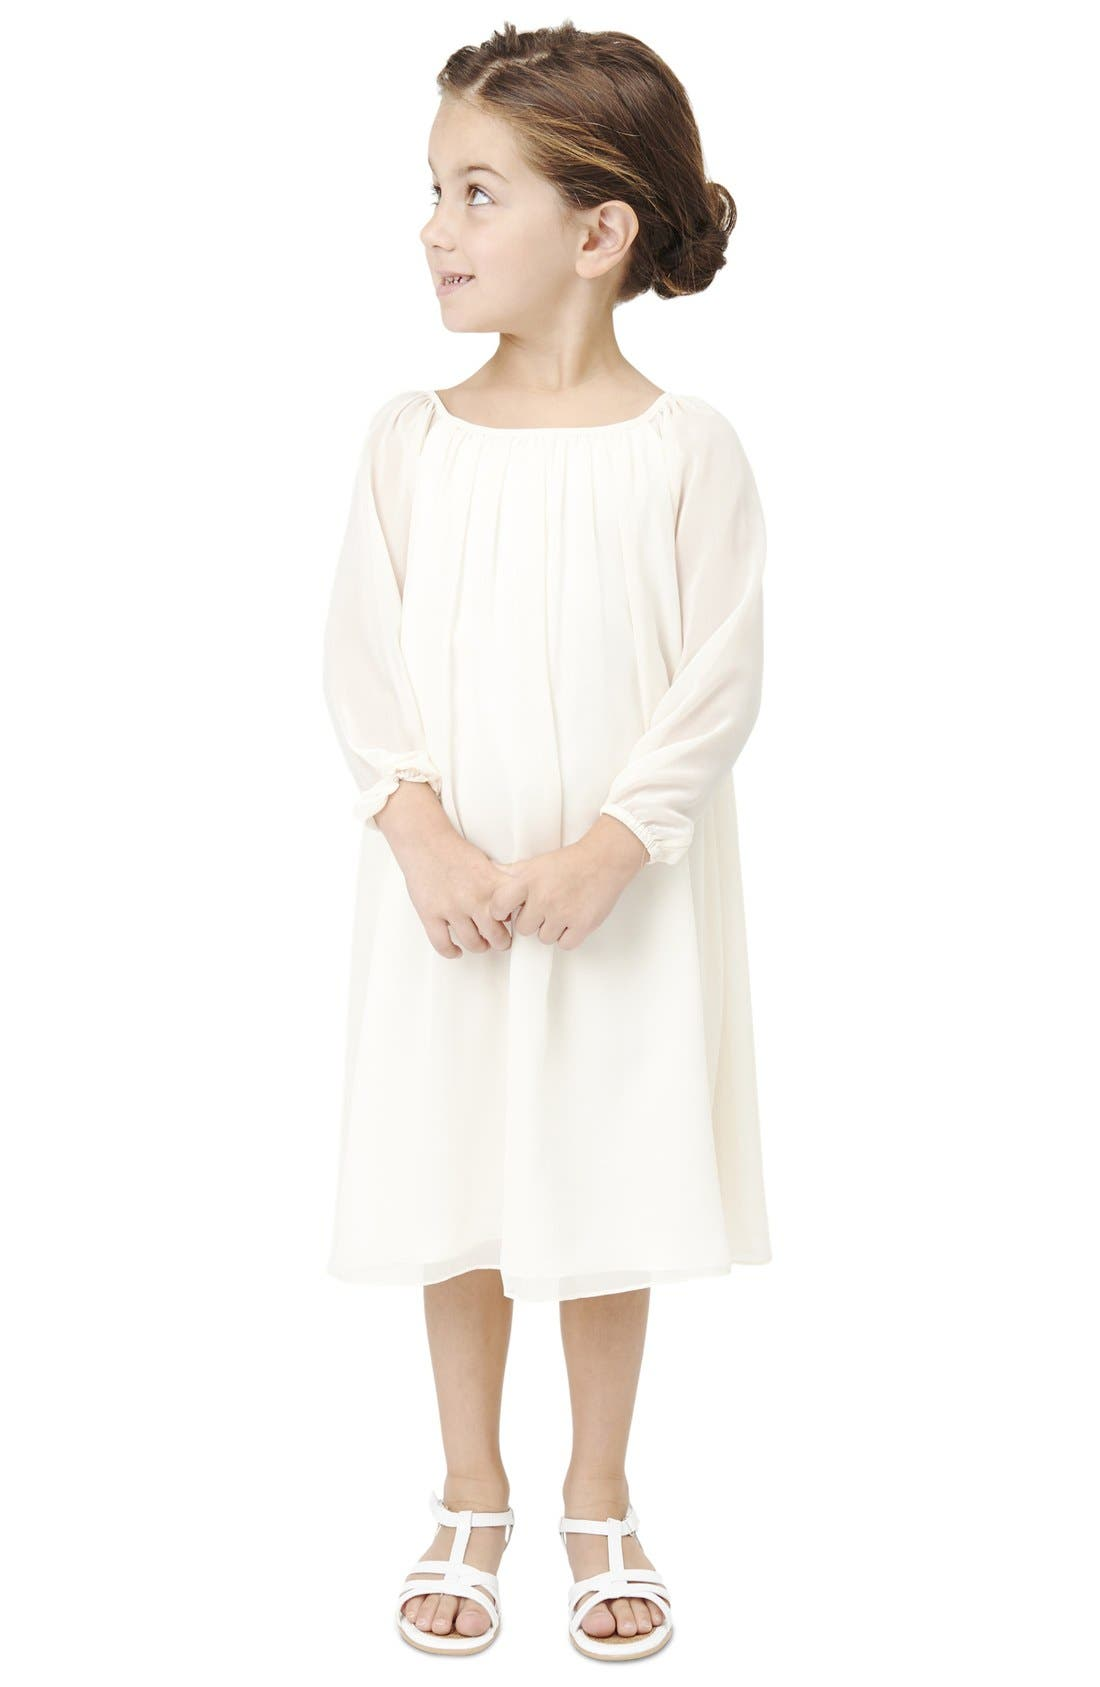 Alternate Image 1 Selected - Babes of the Nile by Joanna August Long Sleeve Chiffon Midi Dress (Toddler Girls, Little Girls & Big Girls)